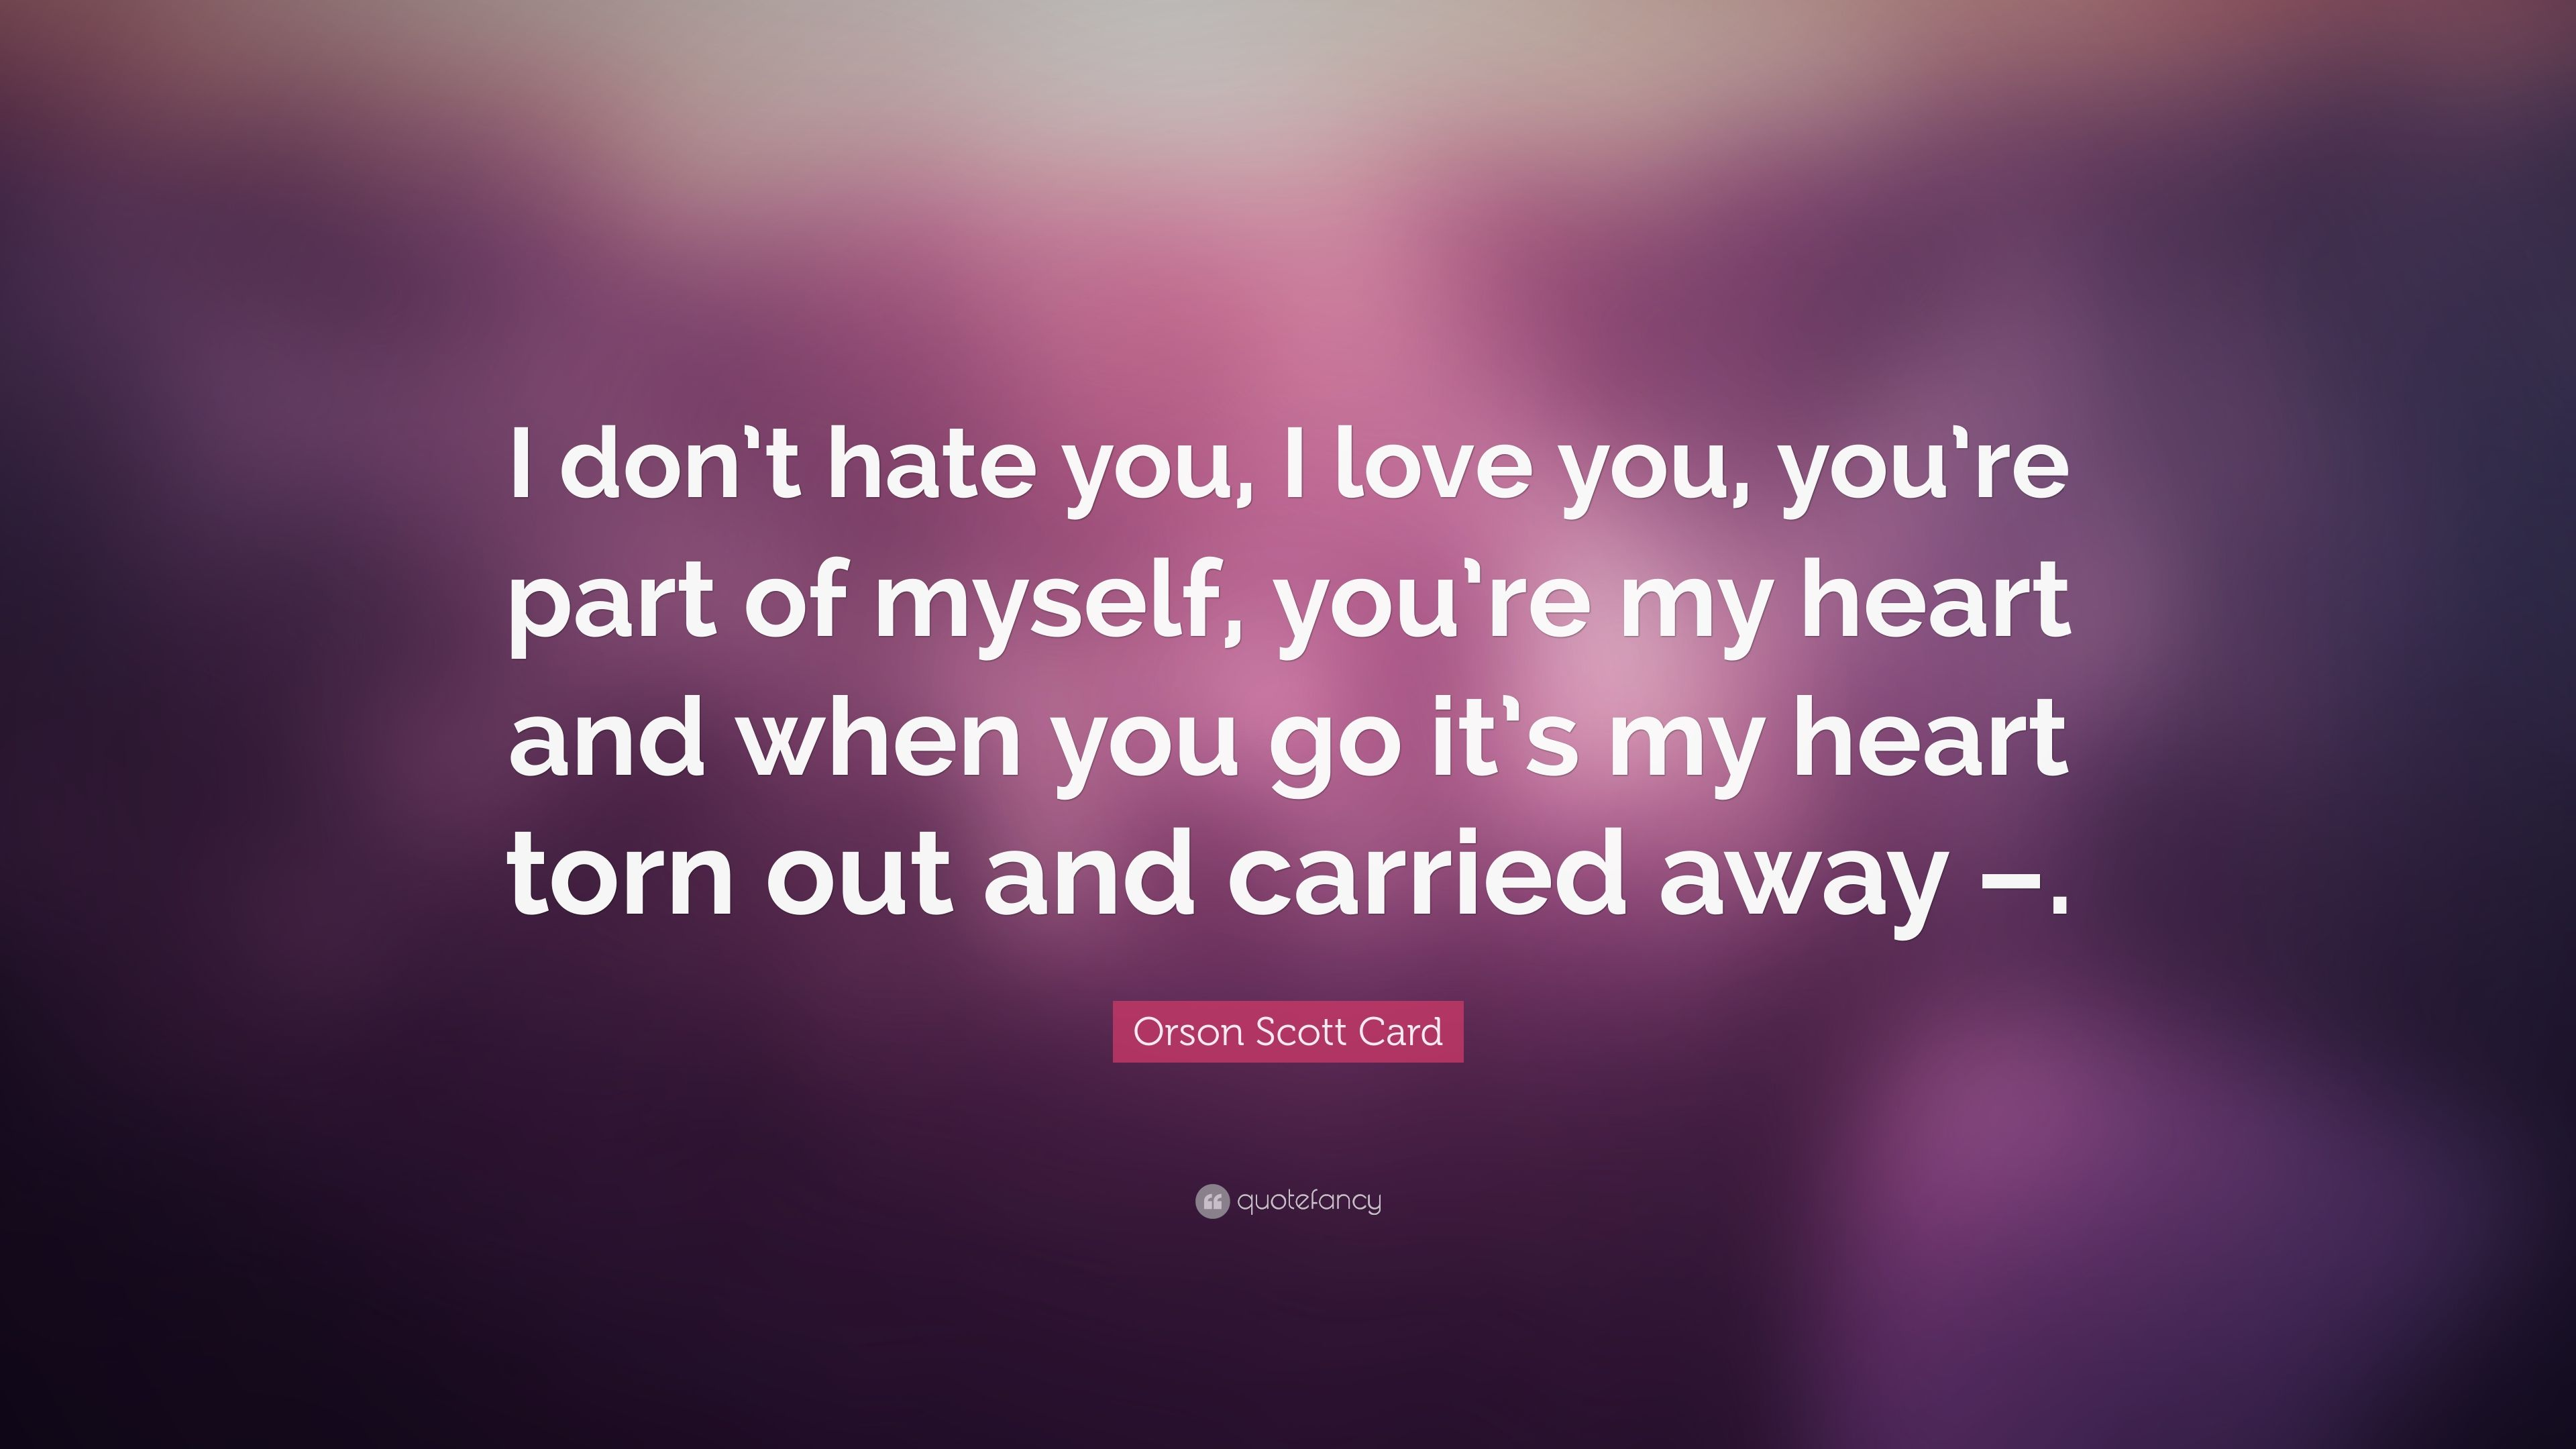 Great Orson Scott Card Quote: U201cI Donu0027t Hate You, I Love You